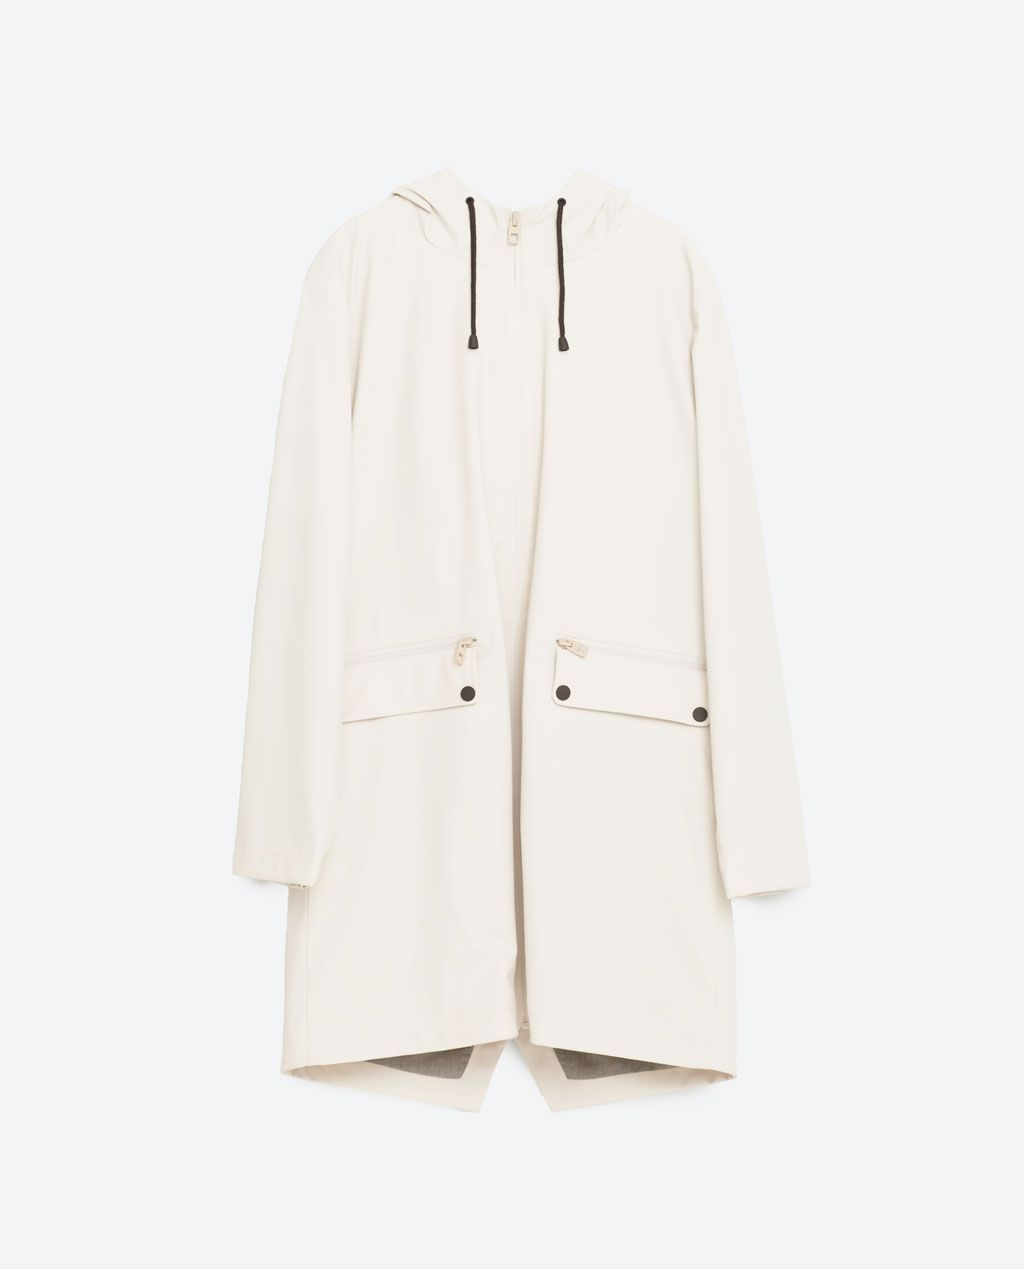 d40d0e878 Image 8 of WATER REPELLENT RAINCOAT from Zara   T H R E A D S ...